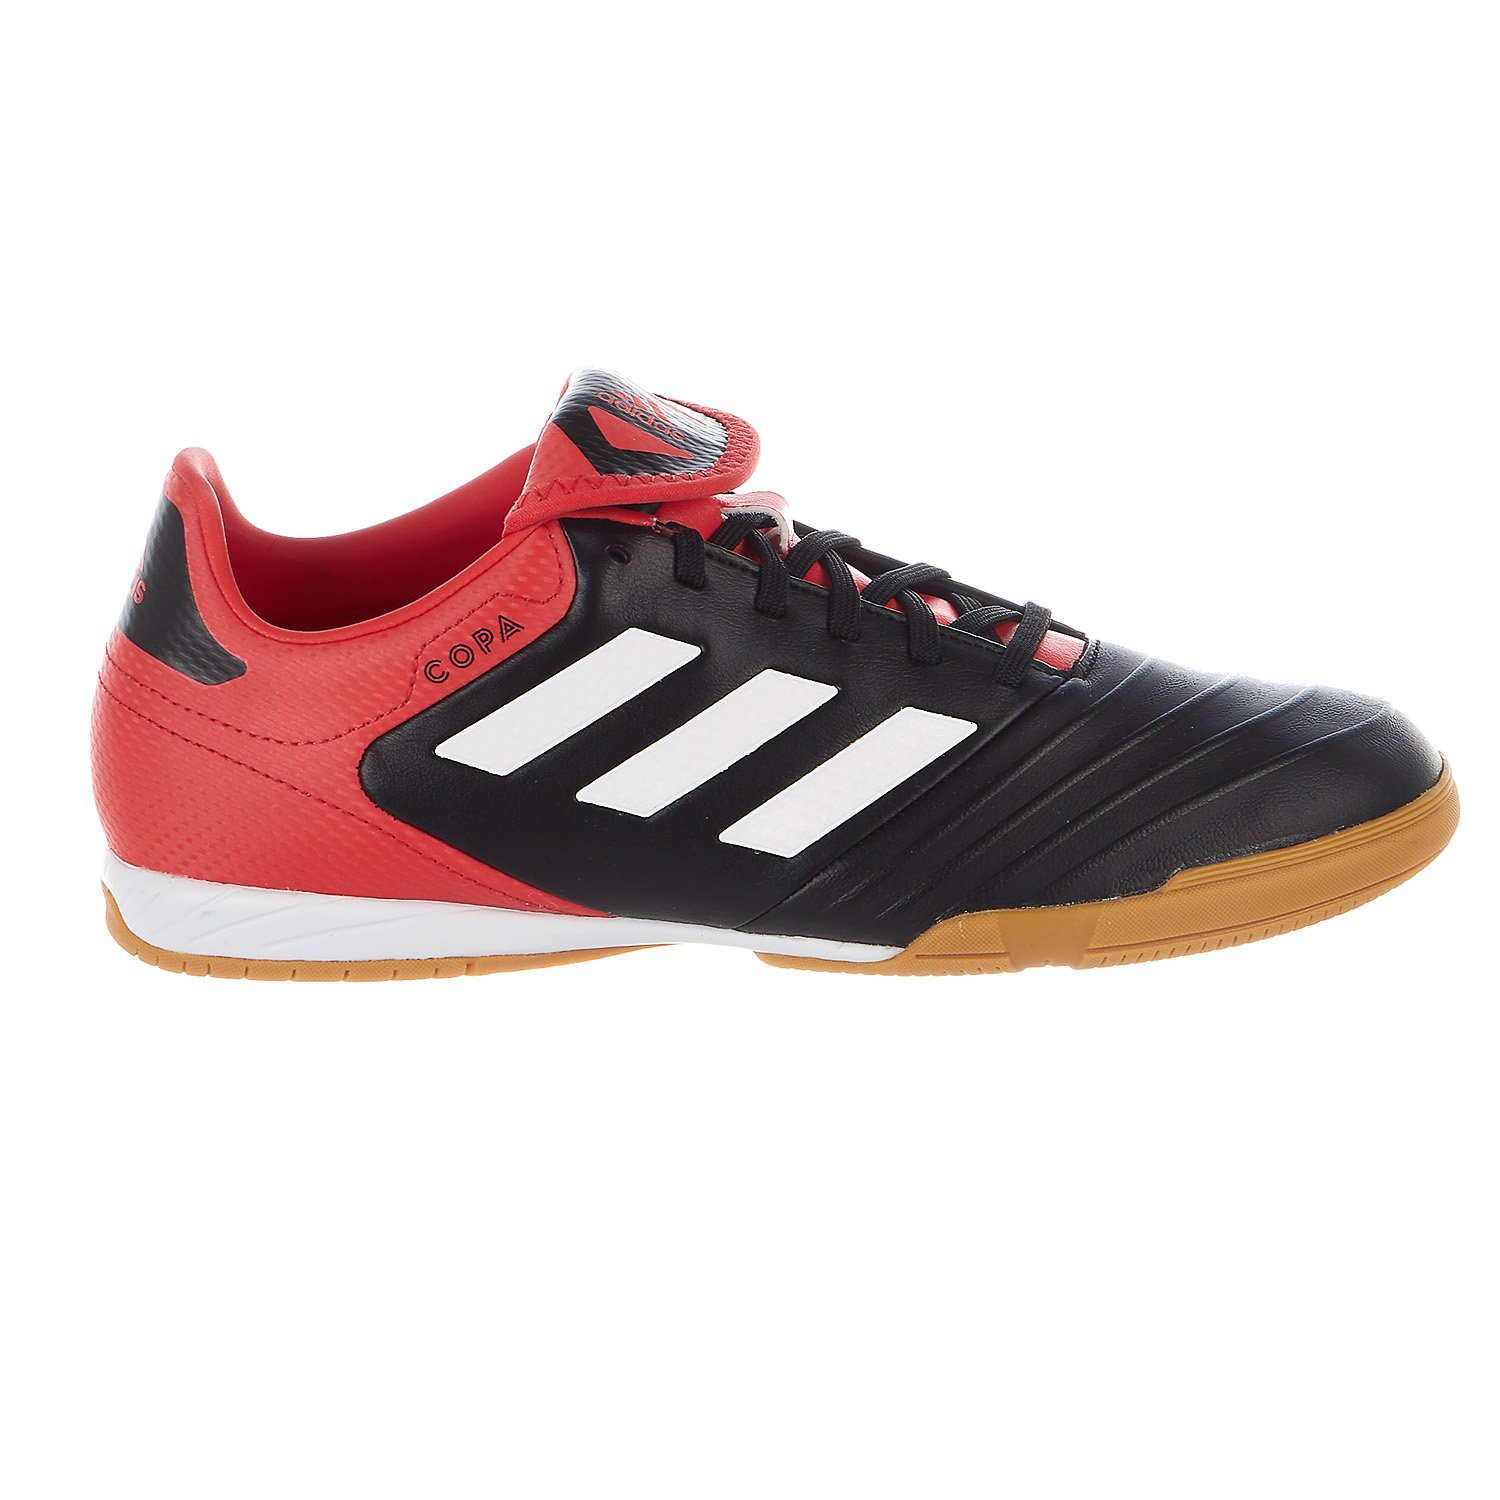 adidas Men's Copa Tango 18.3 in Soccer Shoe, Core Black/White/Real Coral, 9 M US